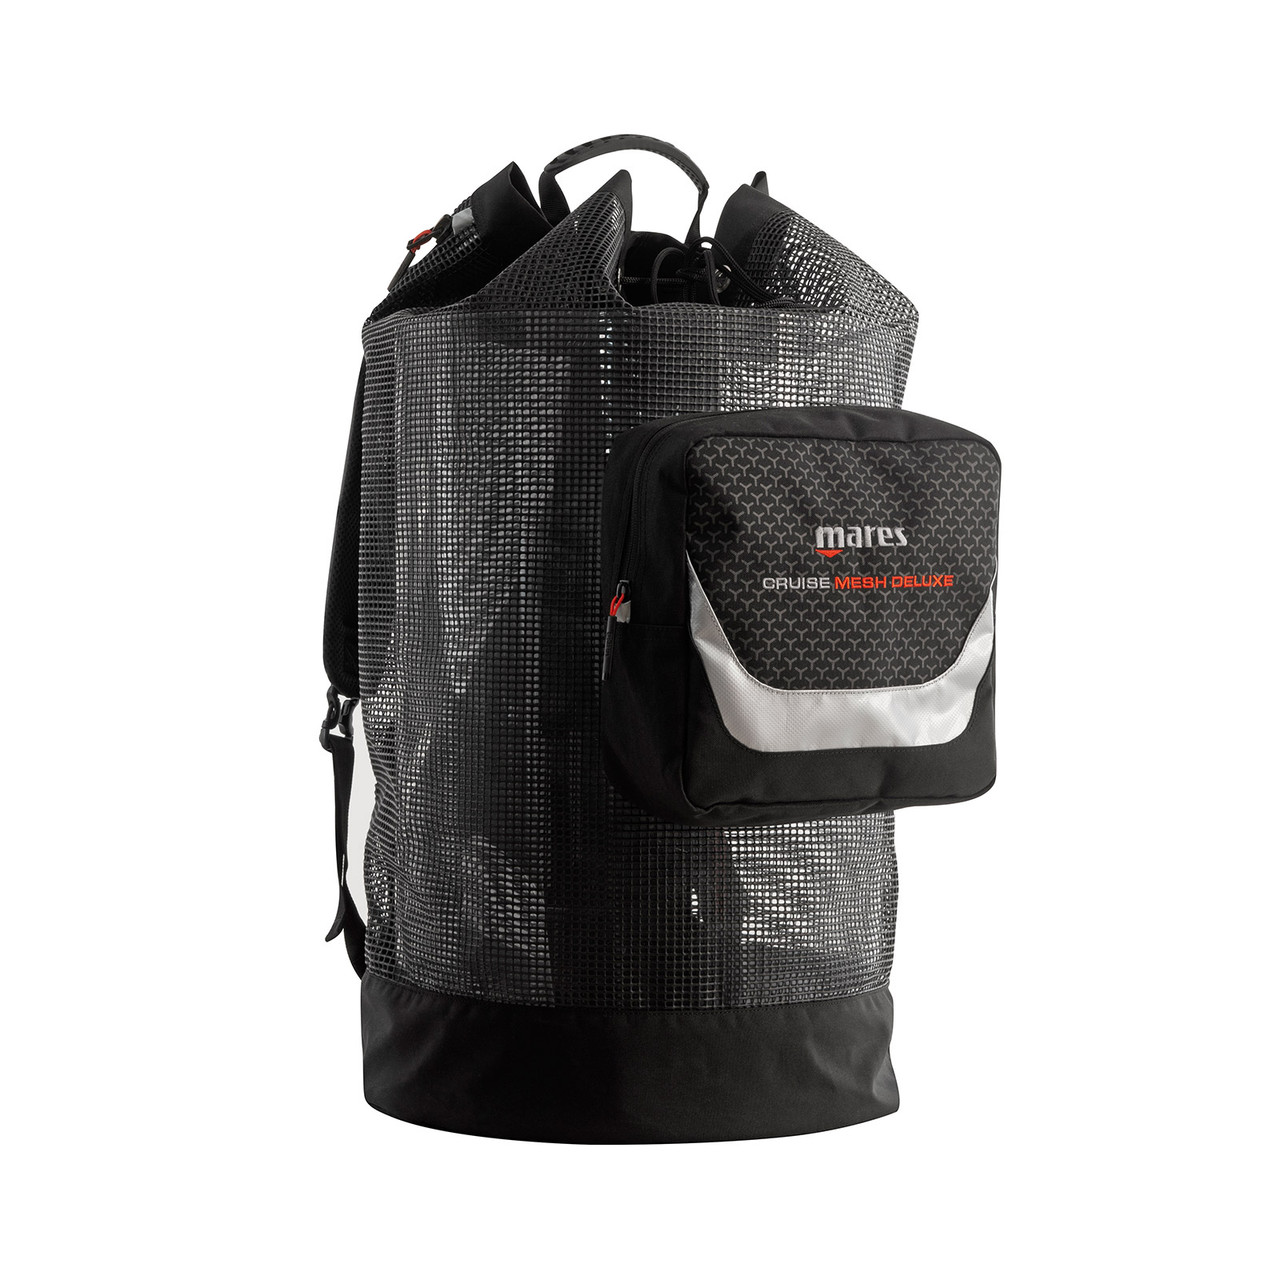 Mares Cruise Backpack Mesh Deluxe Scuba Diving Gear Bag 415476